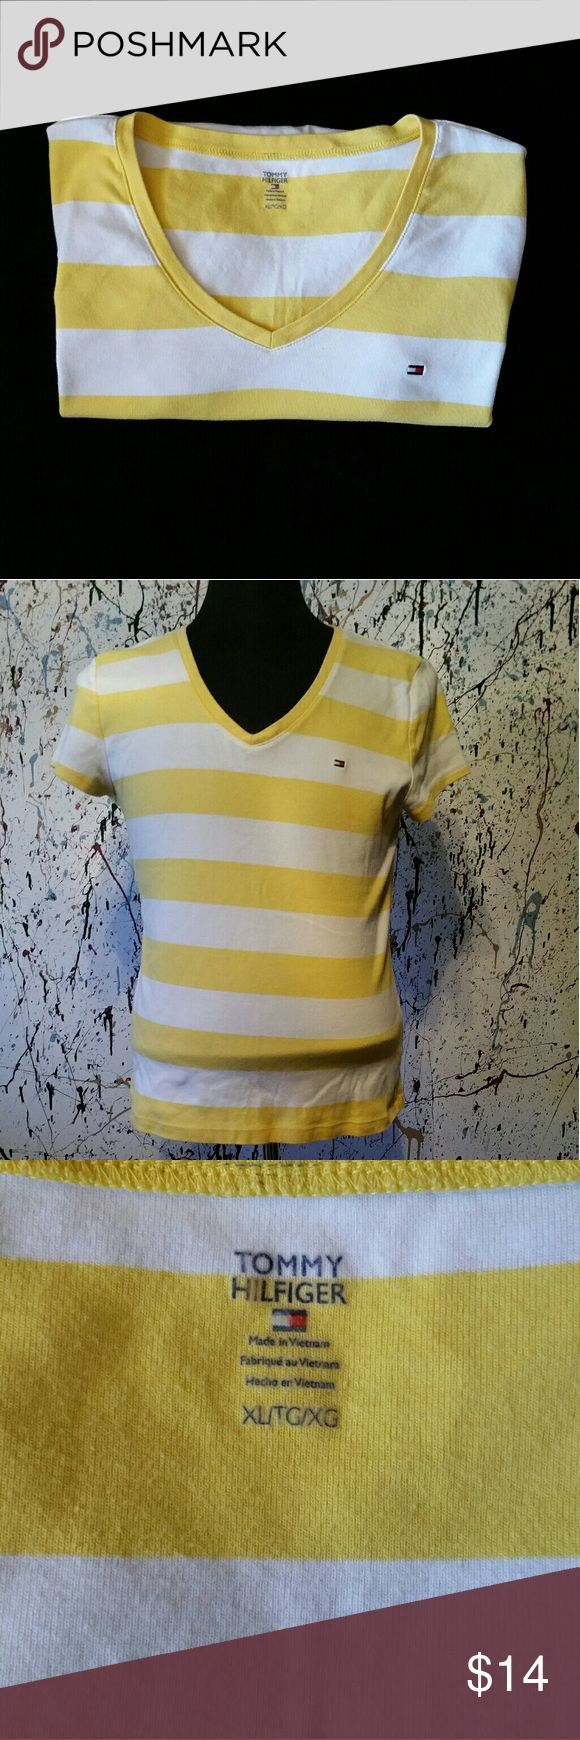 Tommy Hilfiger Womens V Neck T-shirt size XL Short Sleeve, Yellow/White Stripes, Signature Tommy Flag on Chest, Ideal for any Occasion, *bundle friendly* Tommy Hilfiger Tops Tees - Short Sleeve